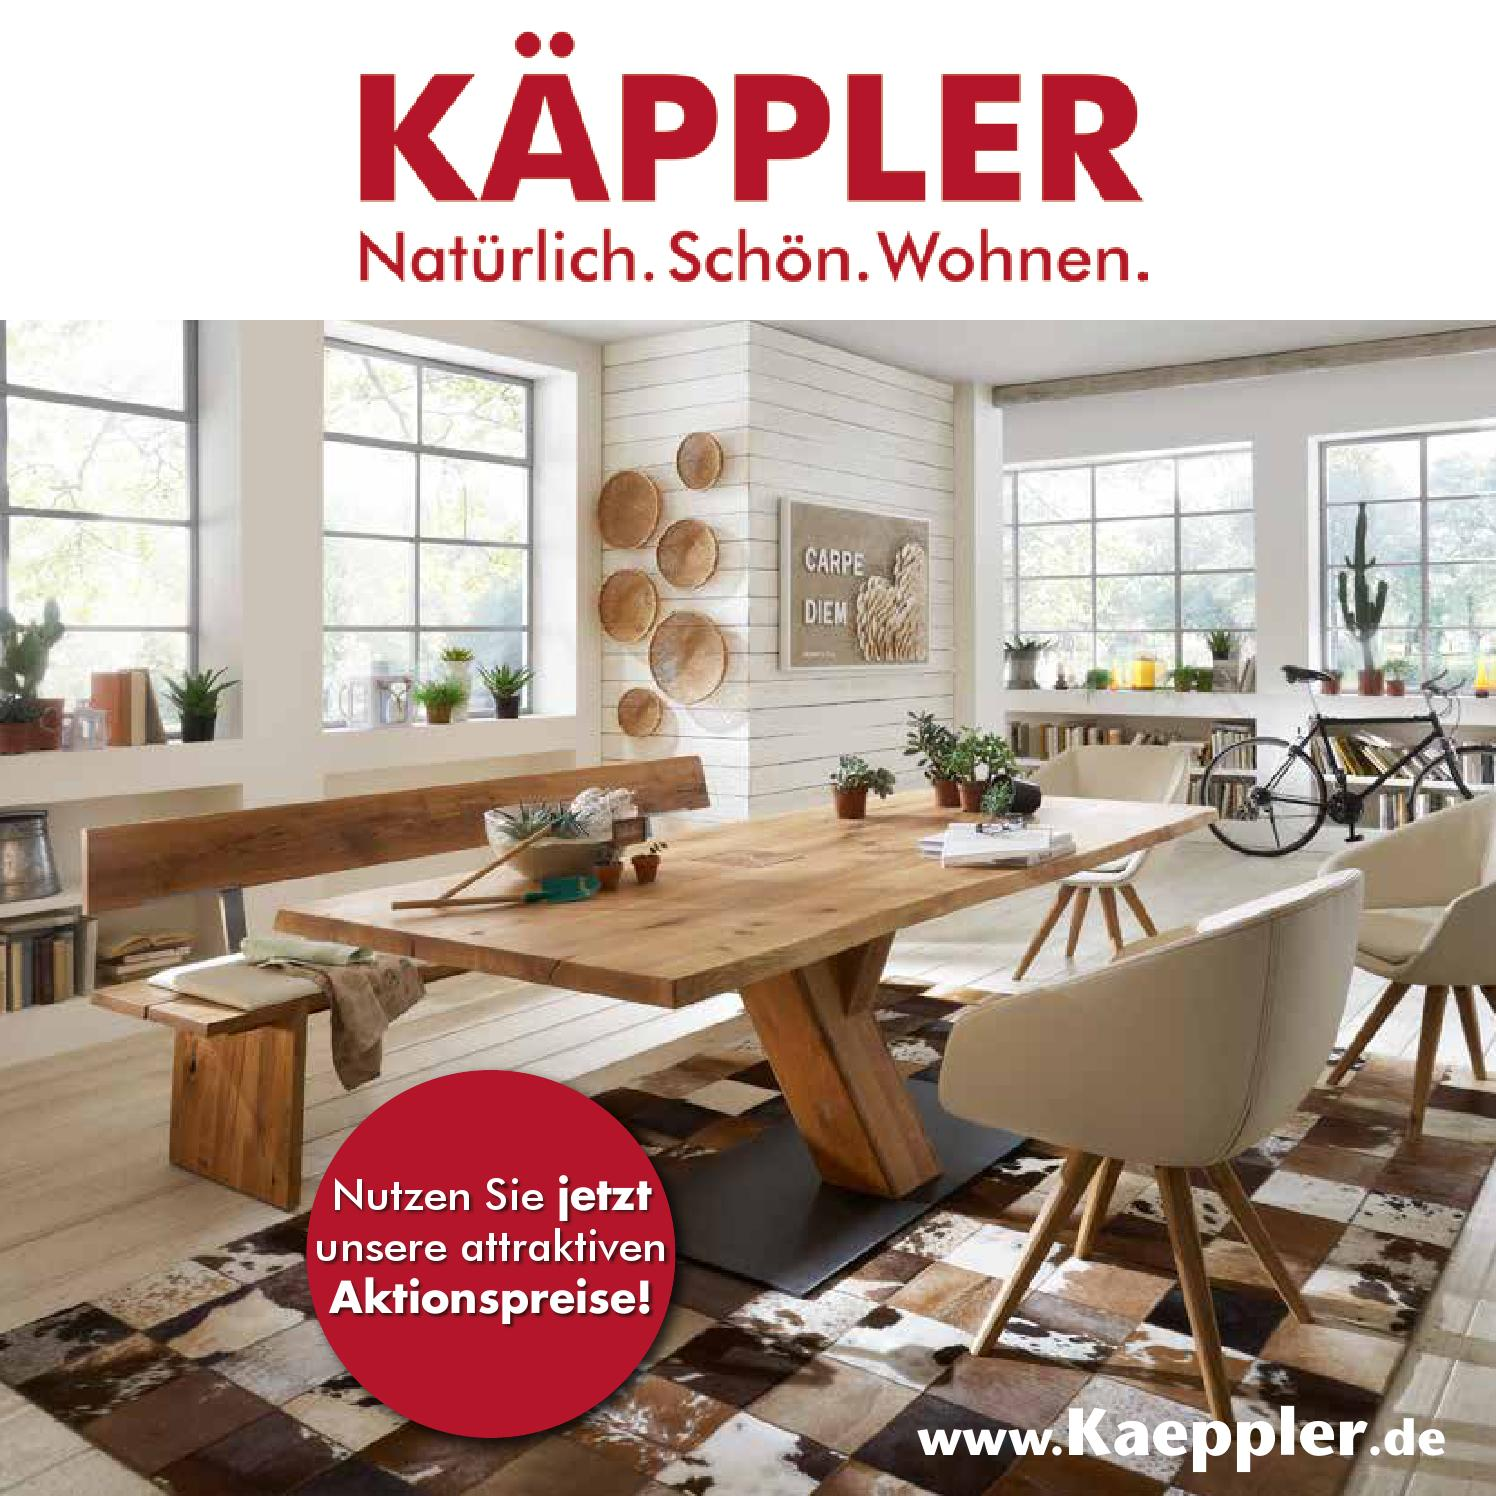 Käppler Möbel magazin pure natur käppler 14kaeppler wohnen - issuu